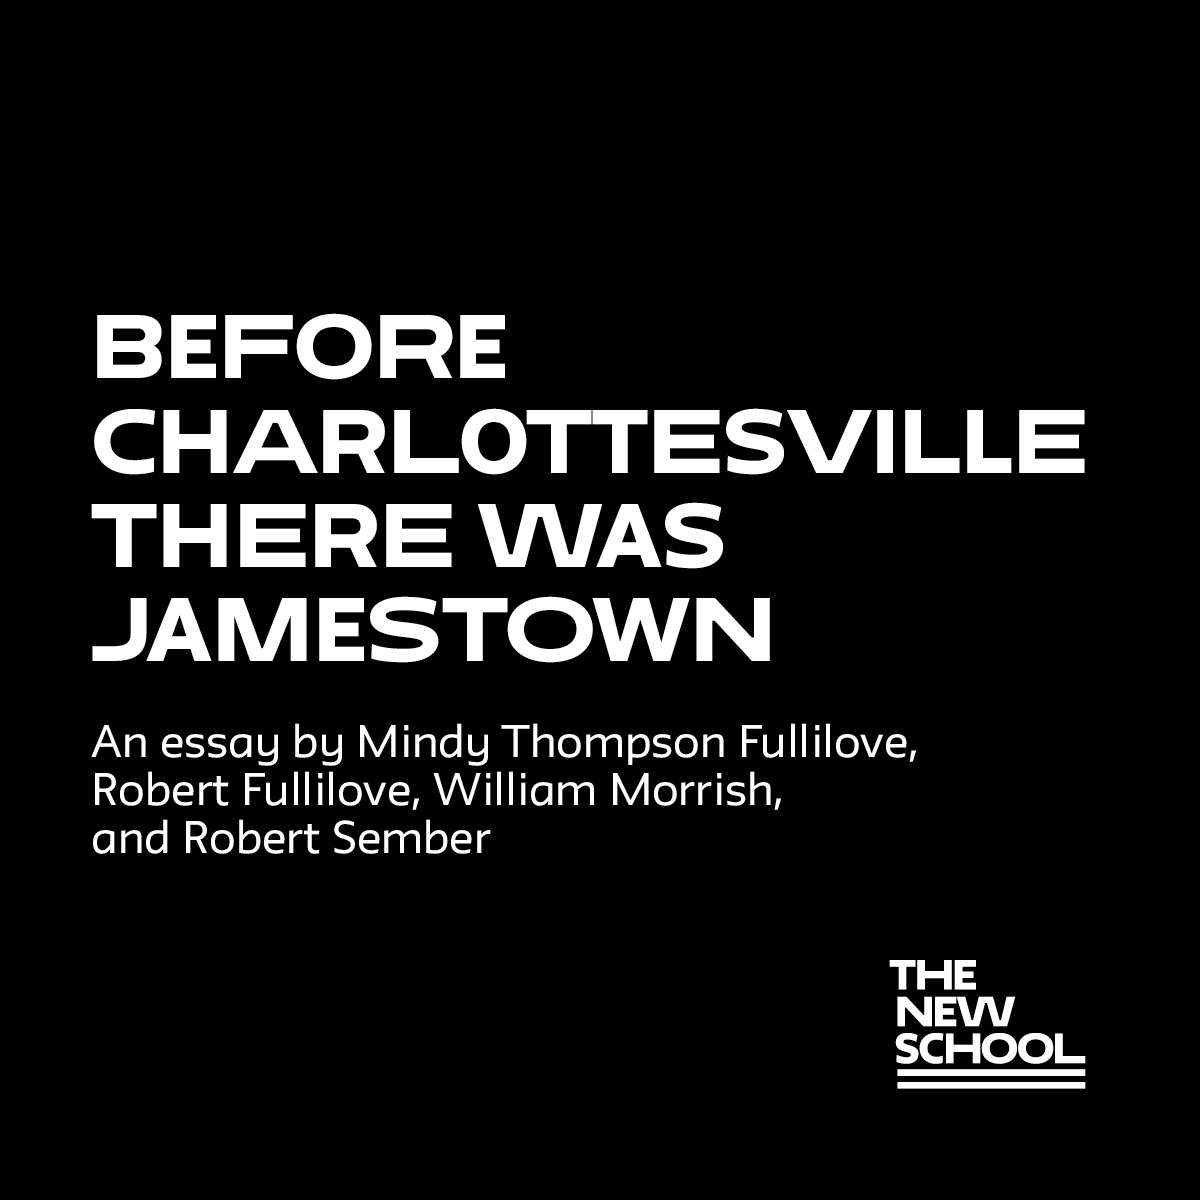 before charlottesville there was jamestown the new school medium an essay by new school faculty members mindy thompson fullilove william morrish robert sember and robert fullilove associate dean for community and